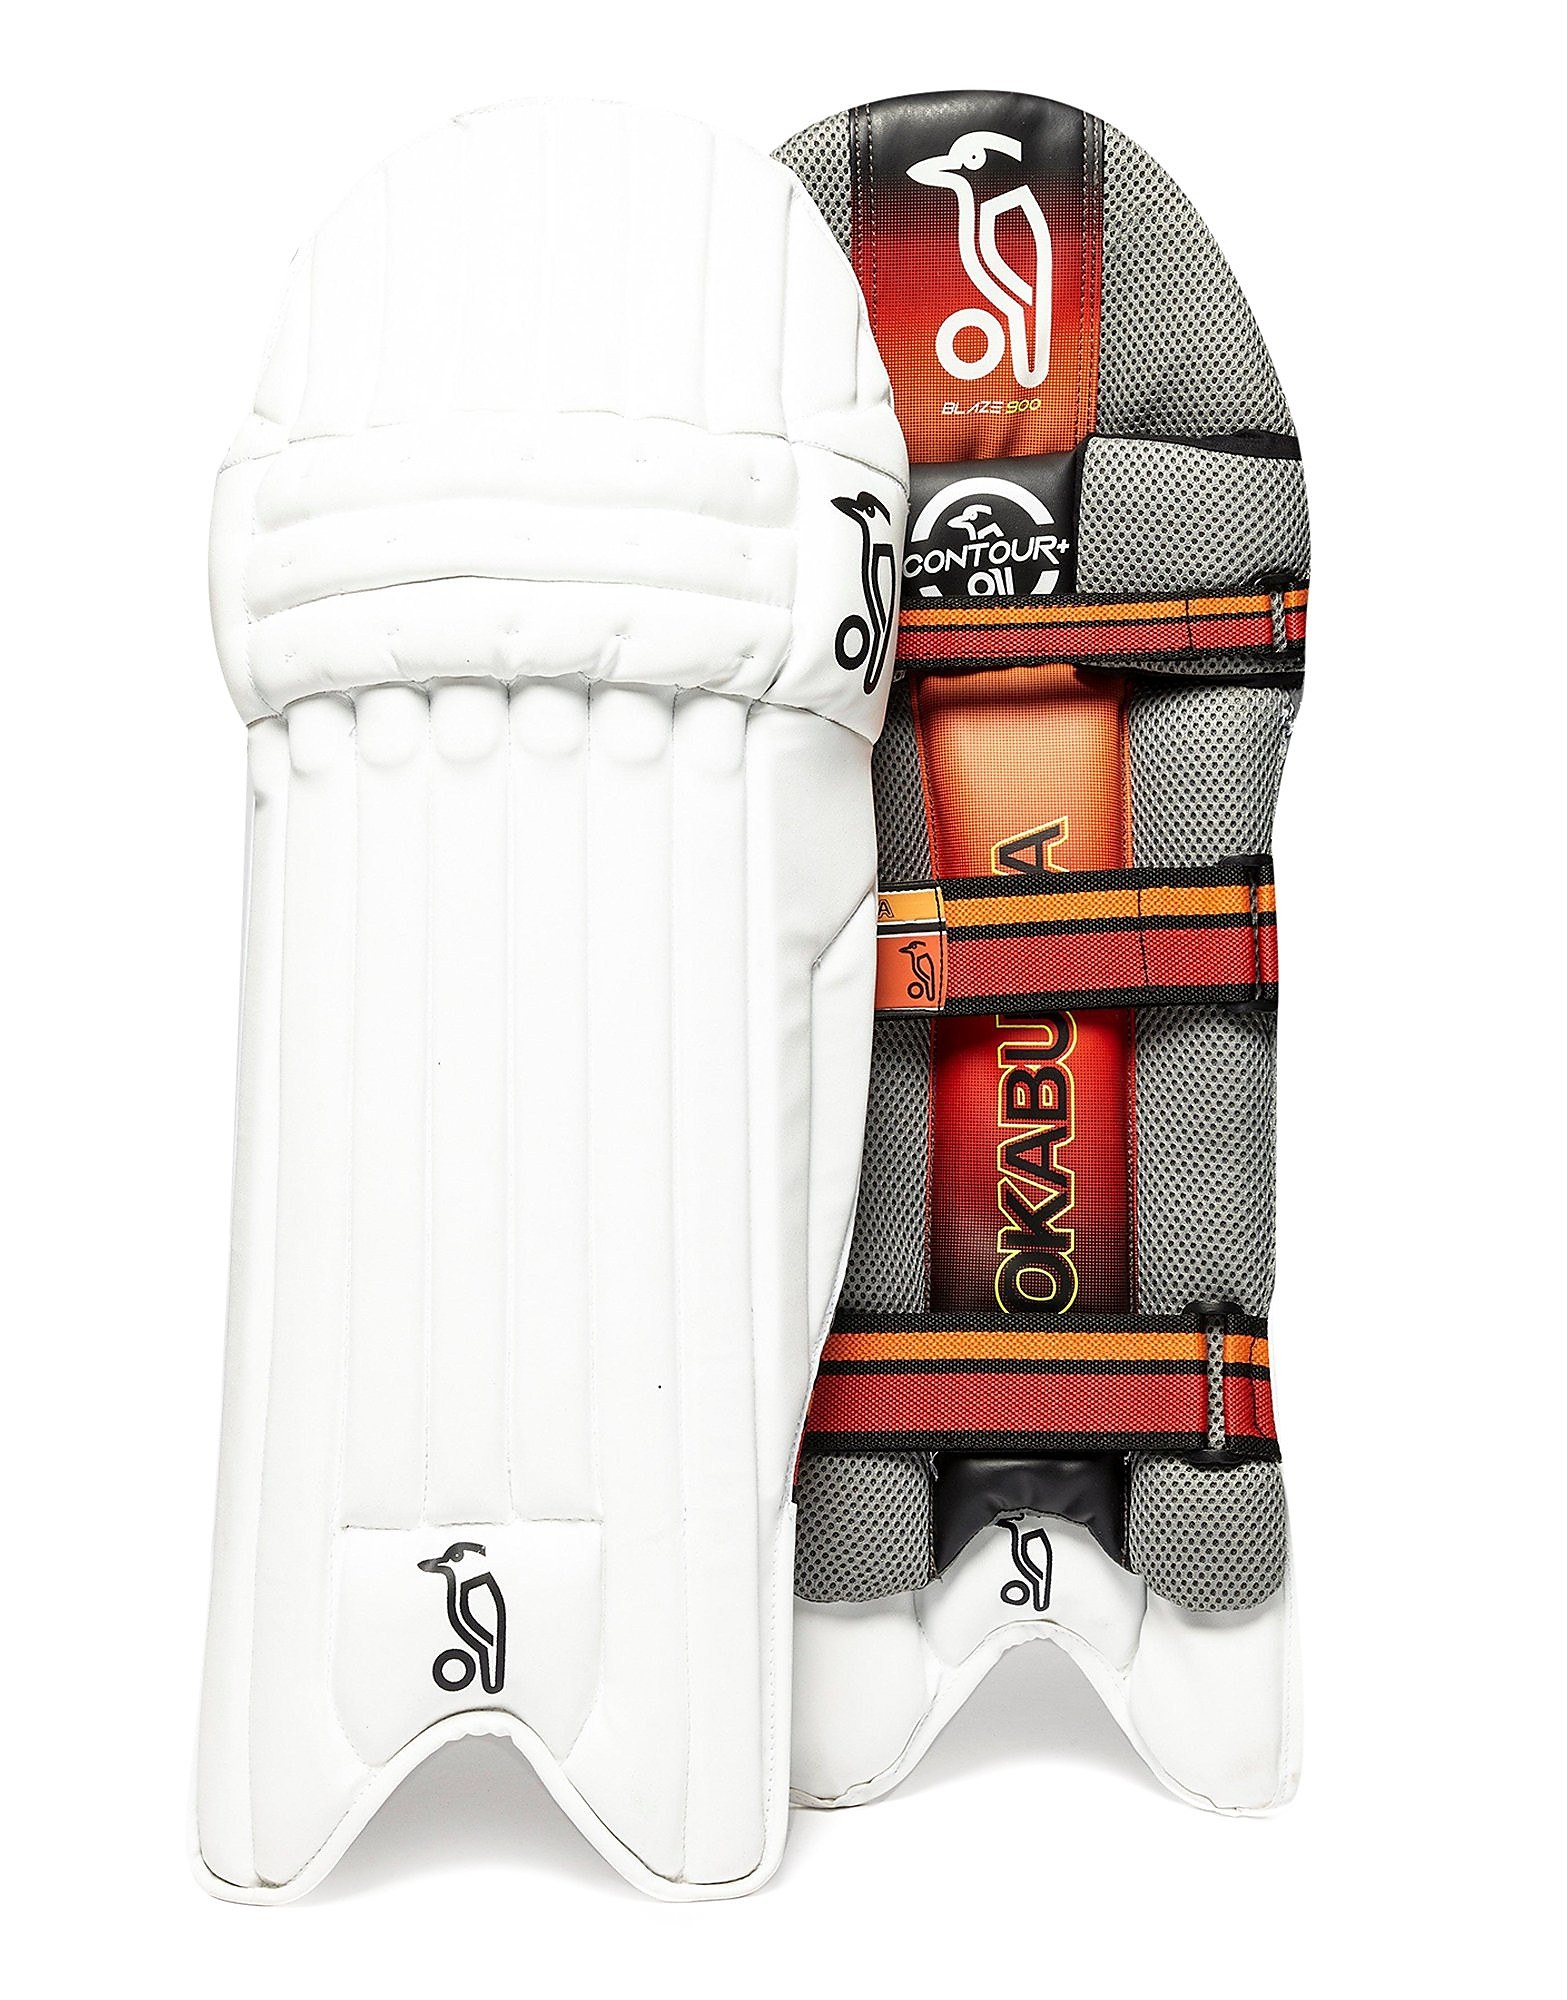 Kookaburra Blaze 900 Men's Batting Pads